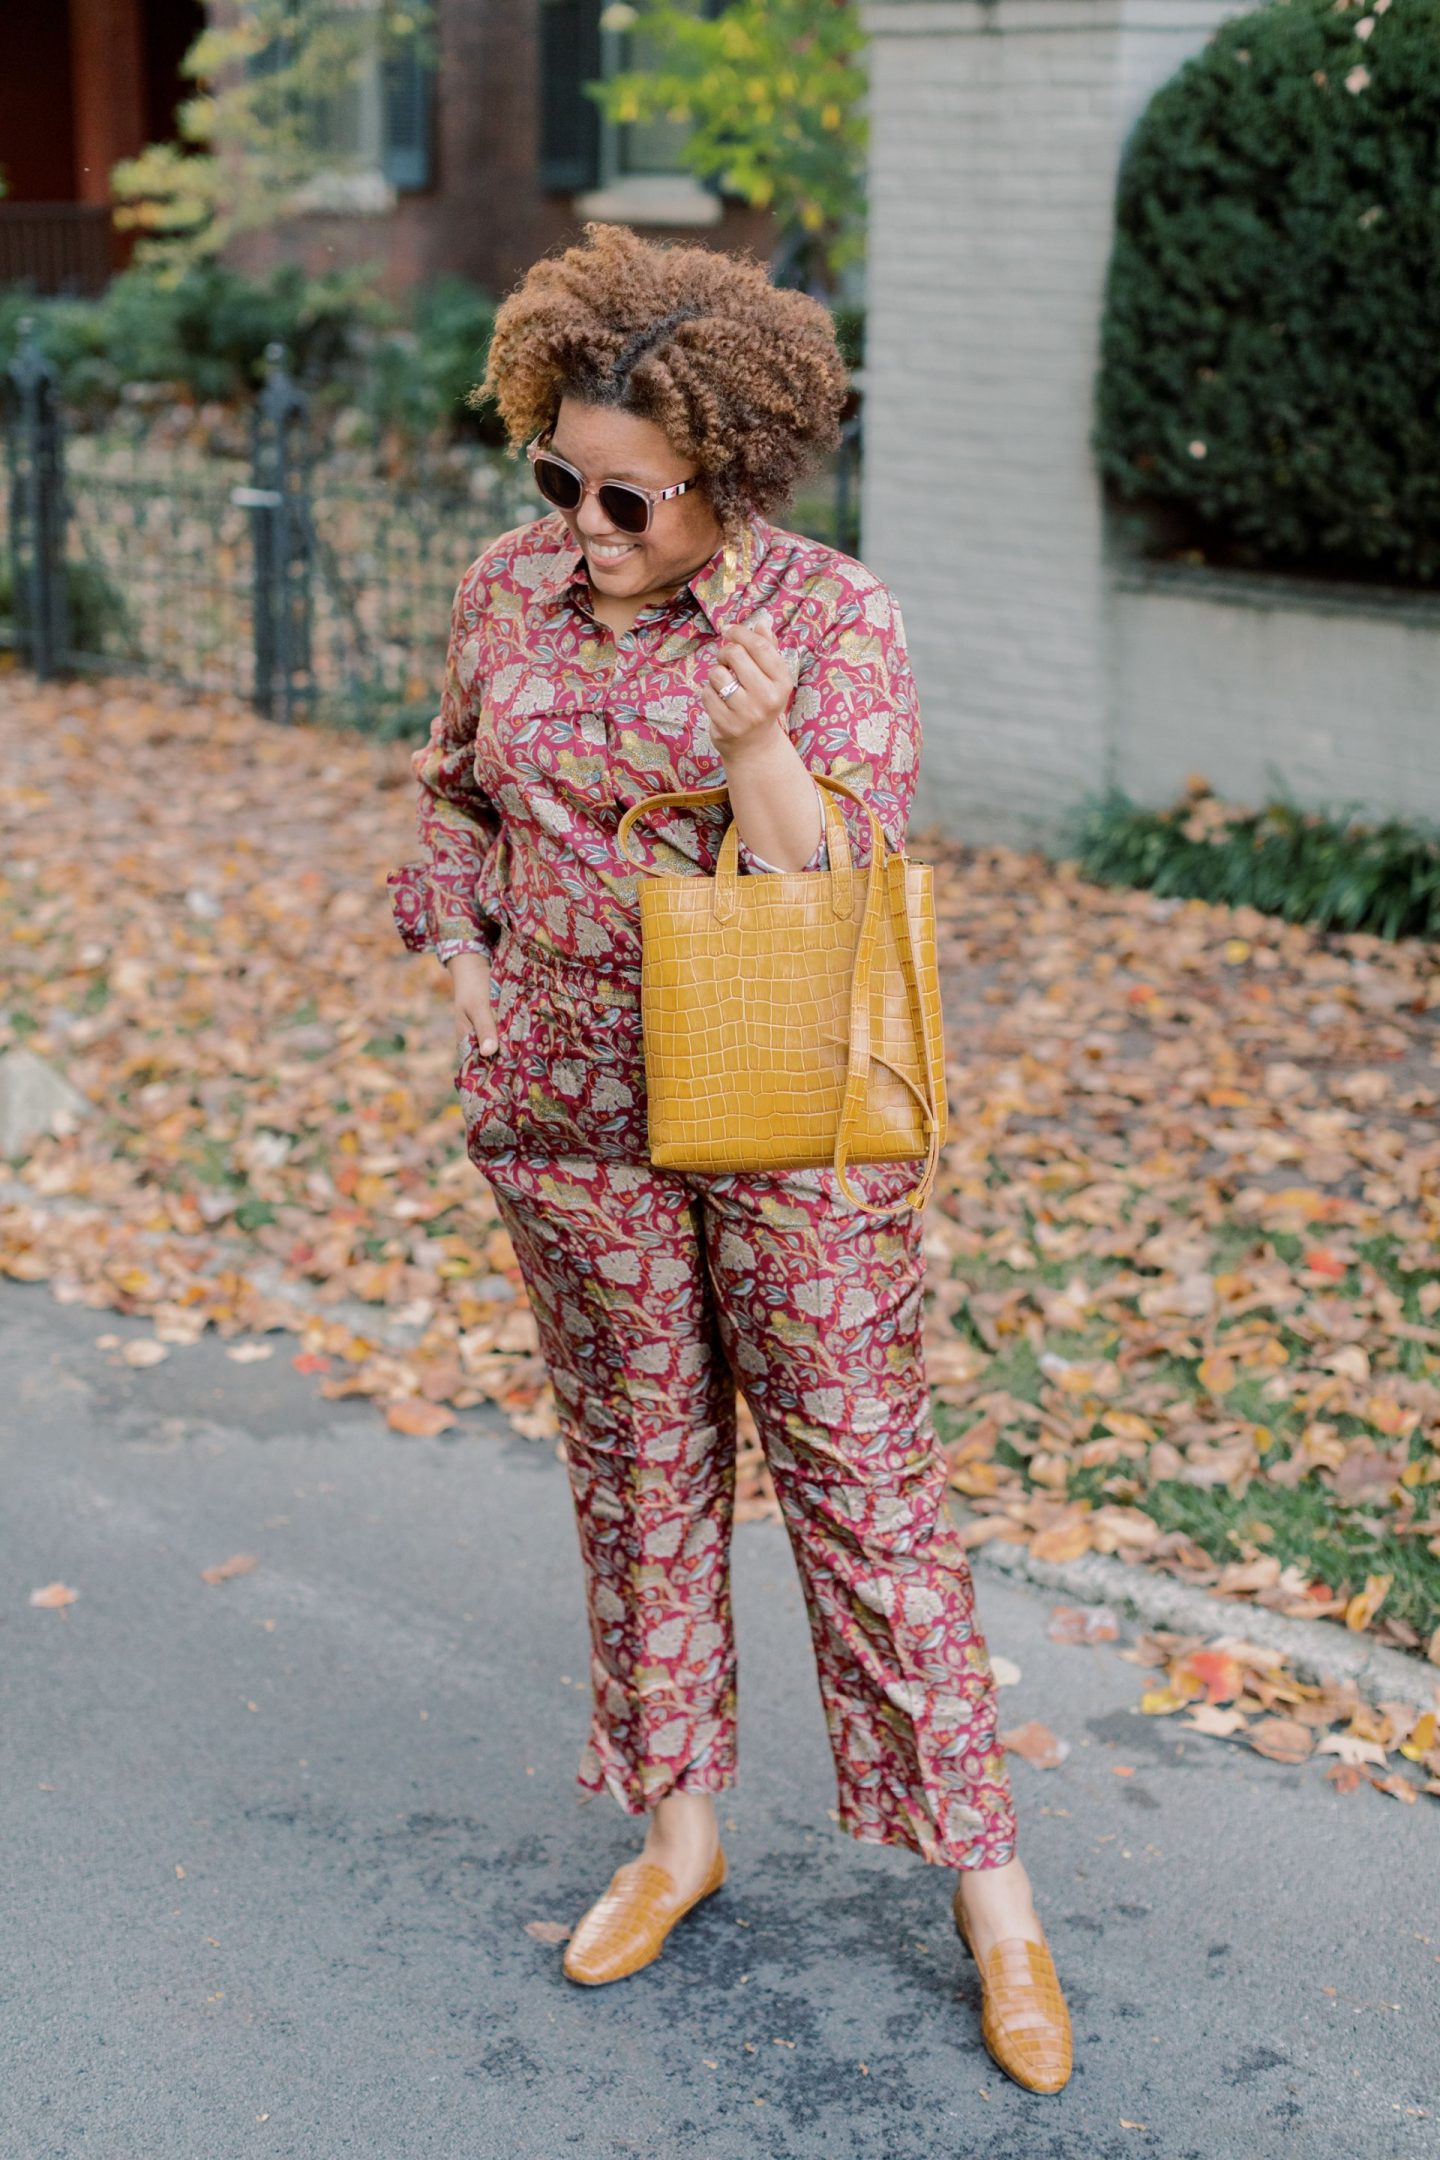 Fall Prints by popular Kentucky fashion blog, Really Rynetta: image of a woman wearing a J.Crew Collection silk twill shirt in jungle cat print, J.Crew Pull-on silk-twill pant in jungle cat print, J.Crew Smoking slippers, Kendra Scott Holland Statement Earrings in Vintage Gold, and holding a Madewell The Small Transport Crossbody bag.